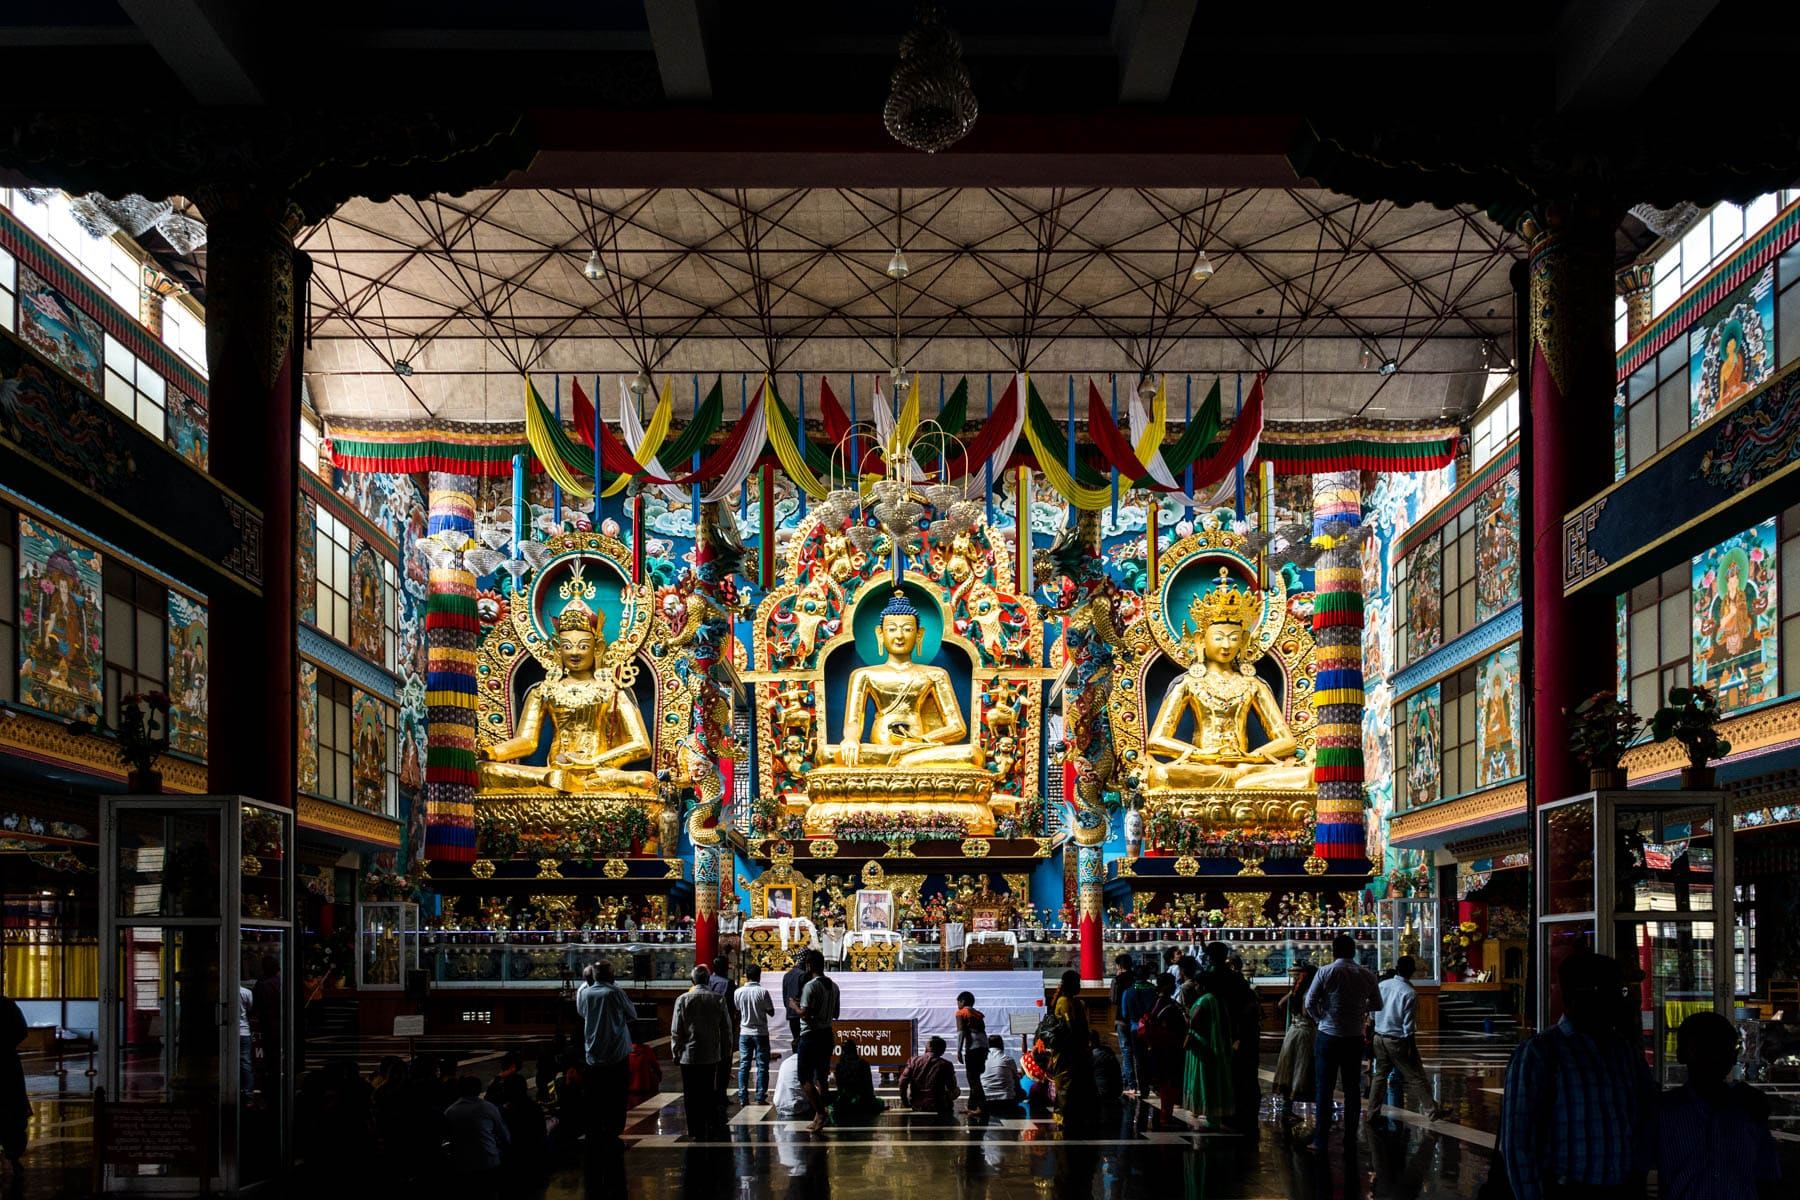 Why we fell in love with India - Golden Buddhas in Bylakuppe, Karnataka, South India - Lost With Purpose travel blog